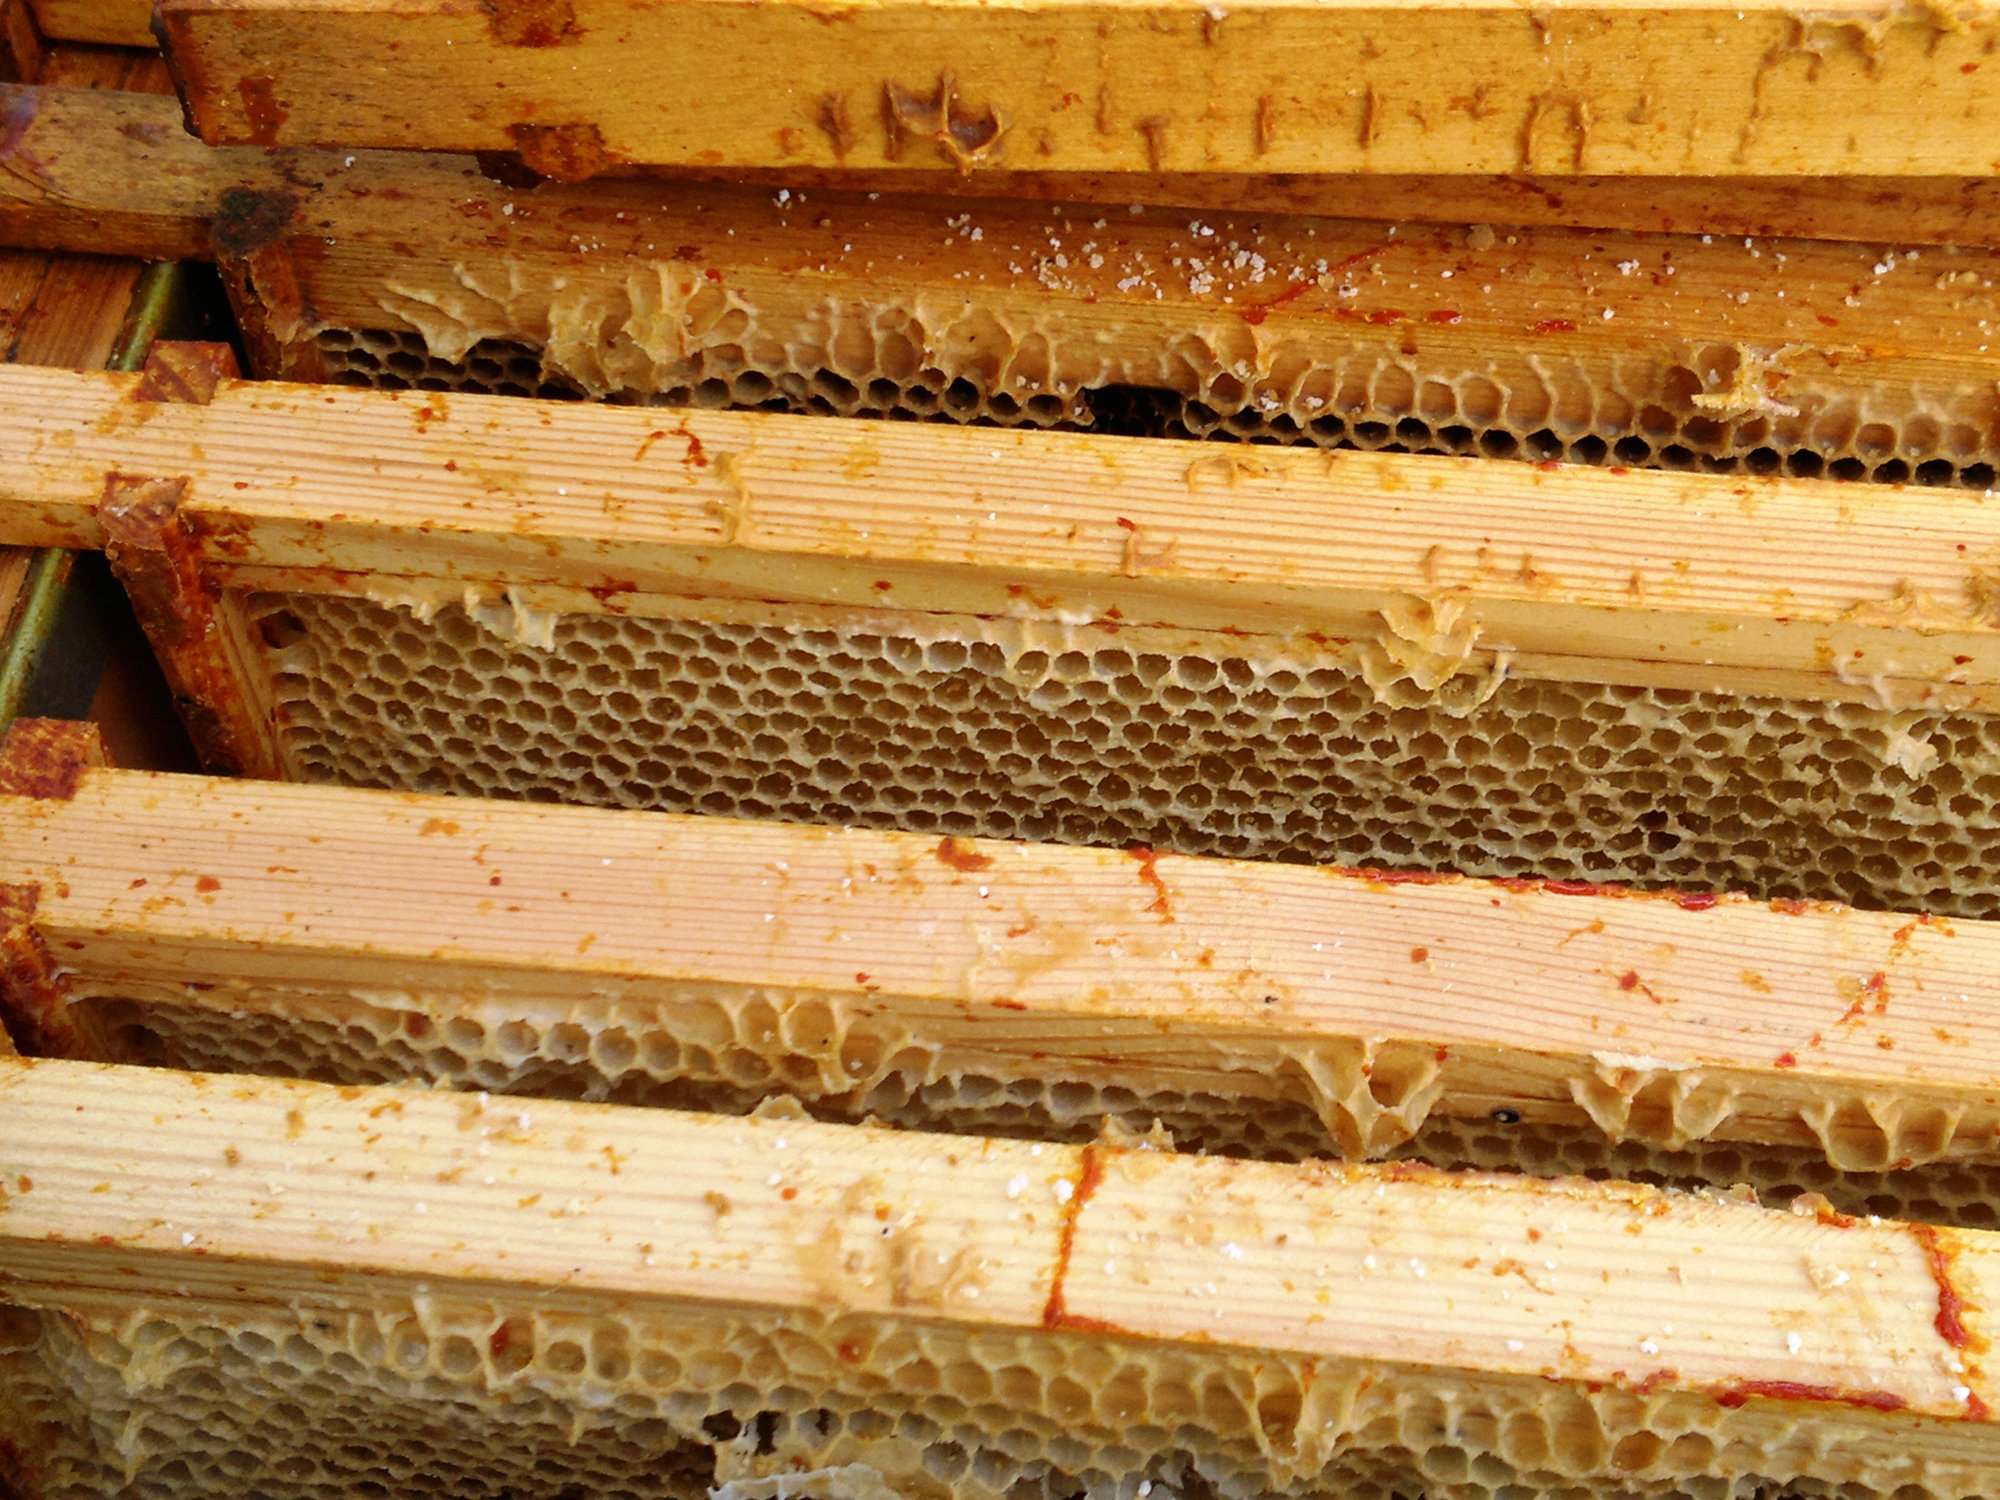 Frame after frame stripped of honey, and no bees in sight